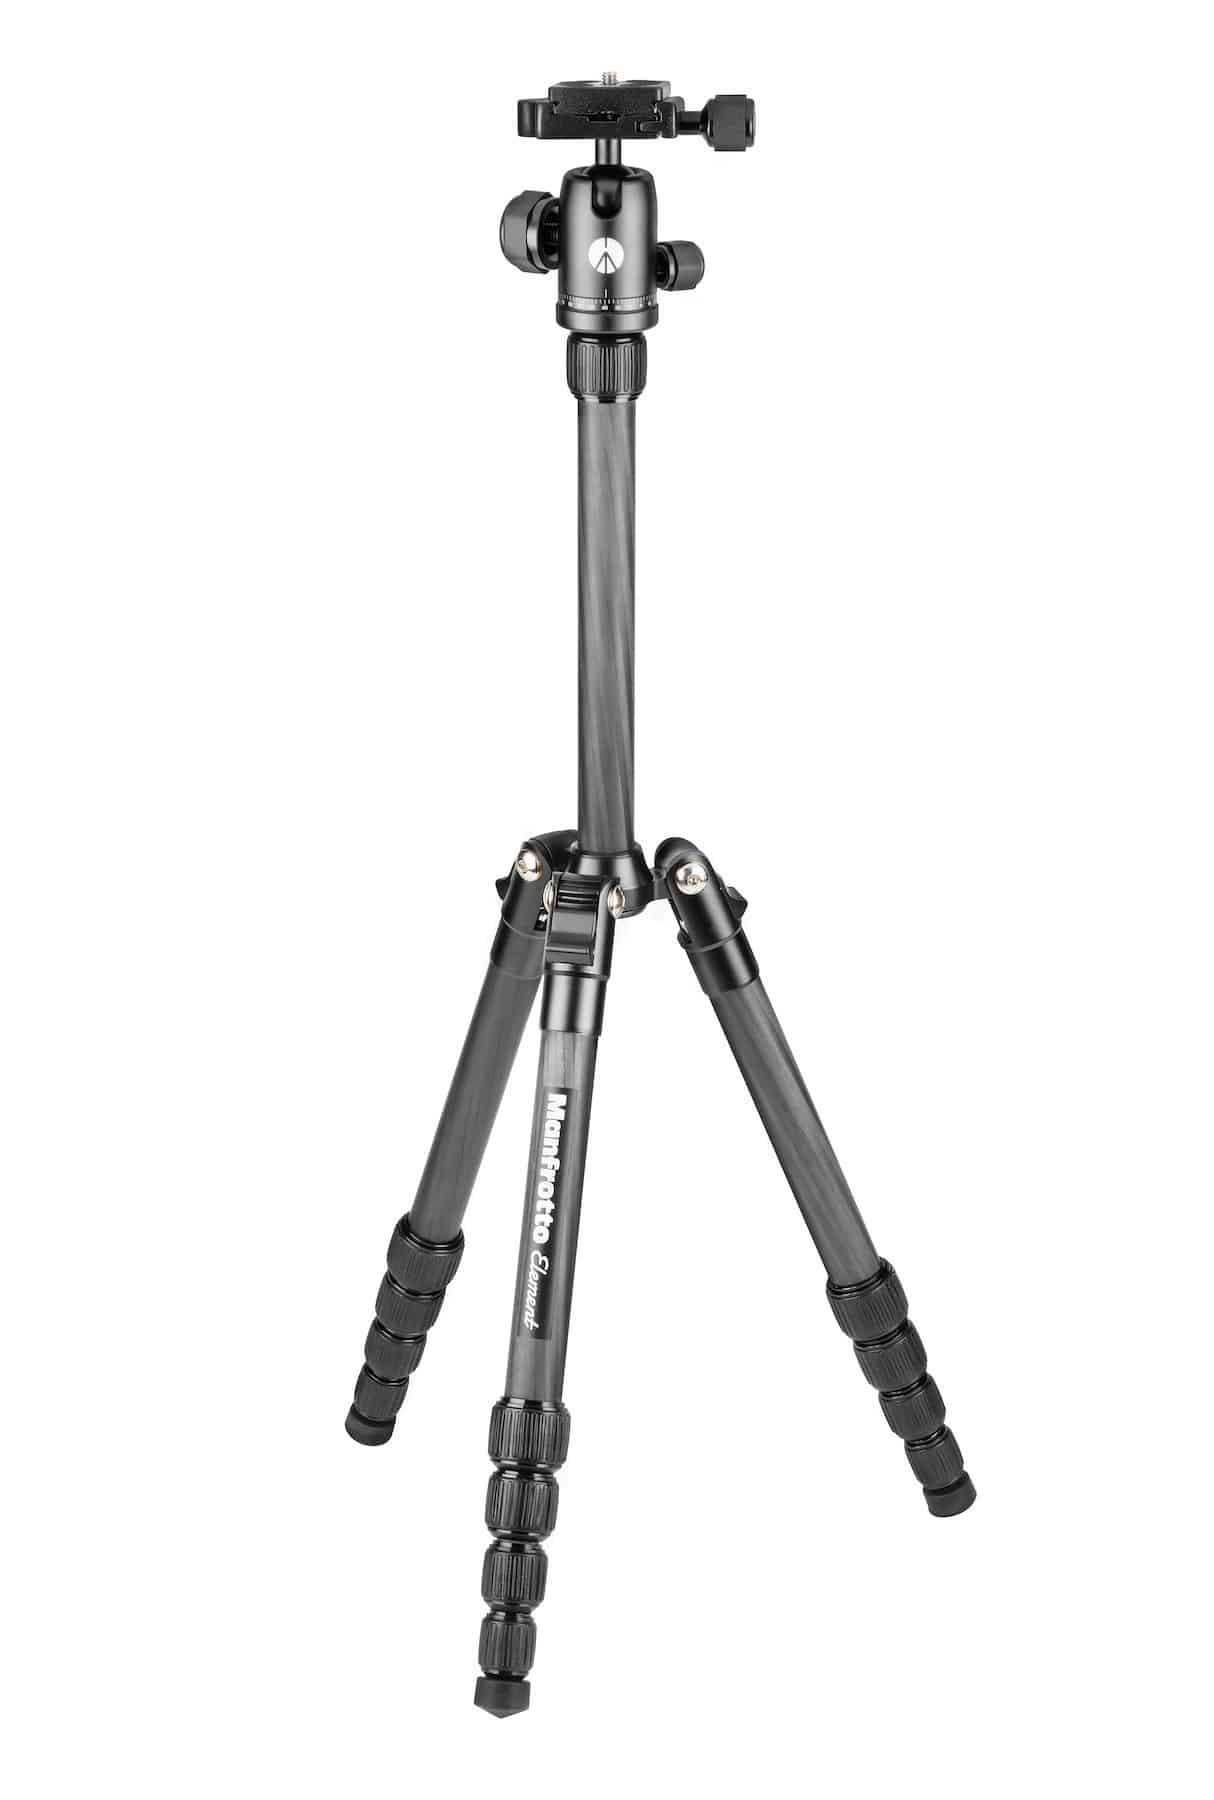 Manfrotto Element Traveller Kit Carbon klein 4kg Traglast Aluminium-Kugelkopf für 126,99 Euro